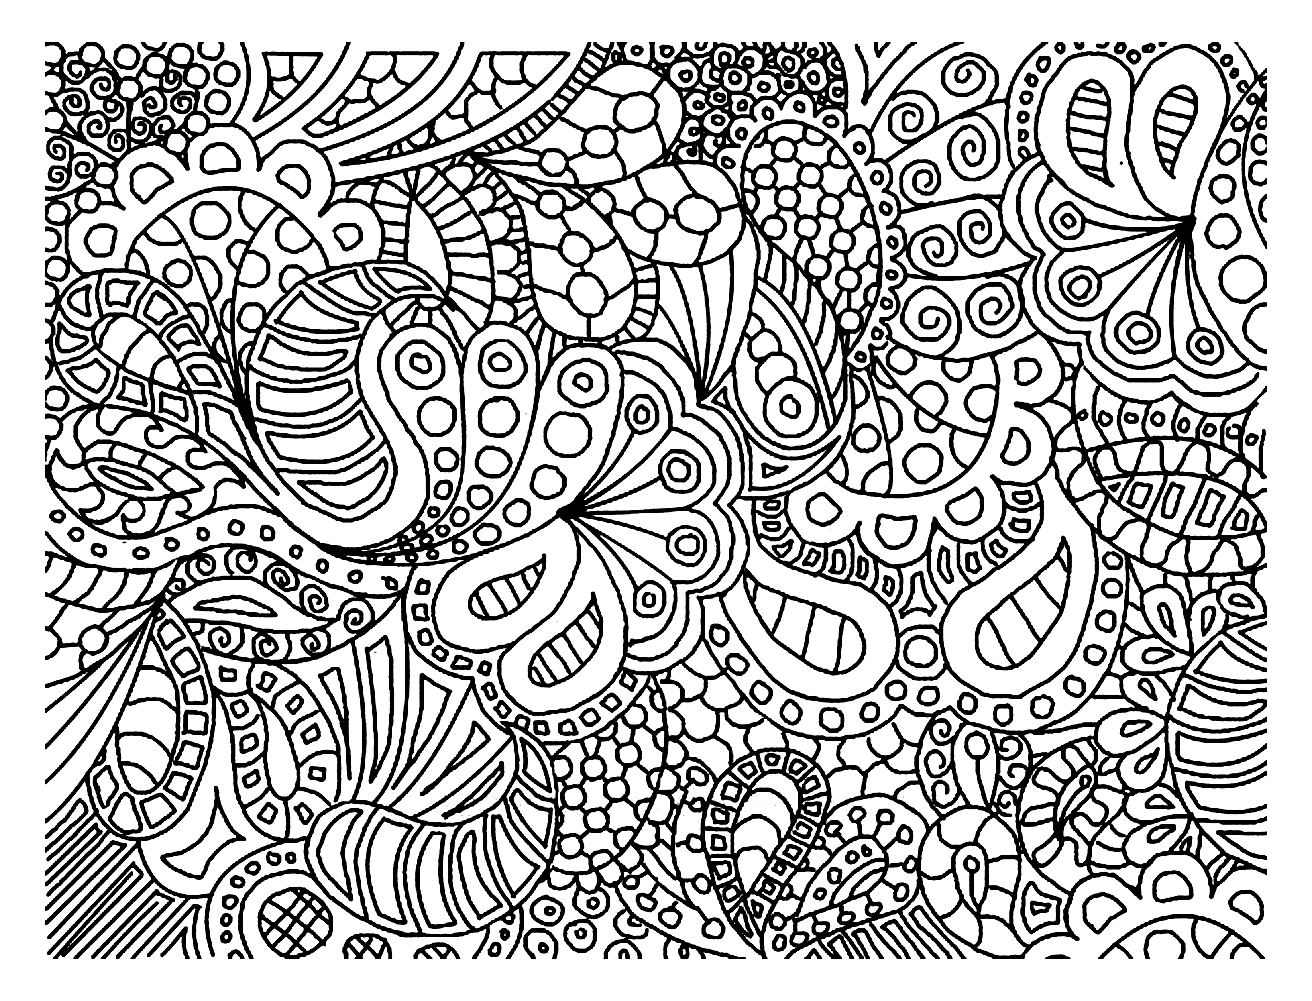 doodle coloring pages printable foods doodle coloring page printable cutekawaii coloring doodle coloring printable pages